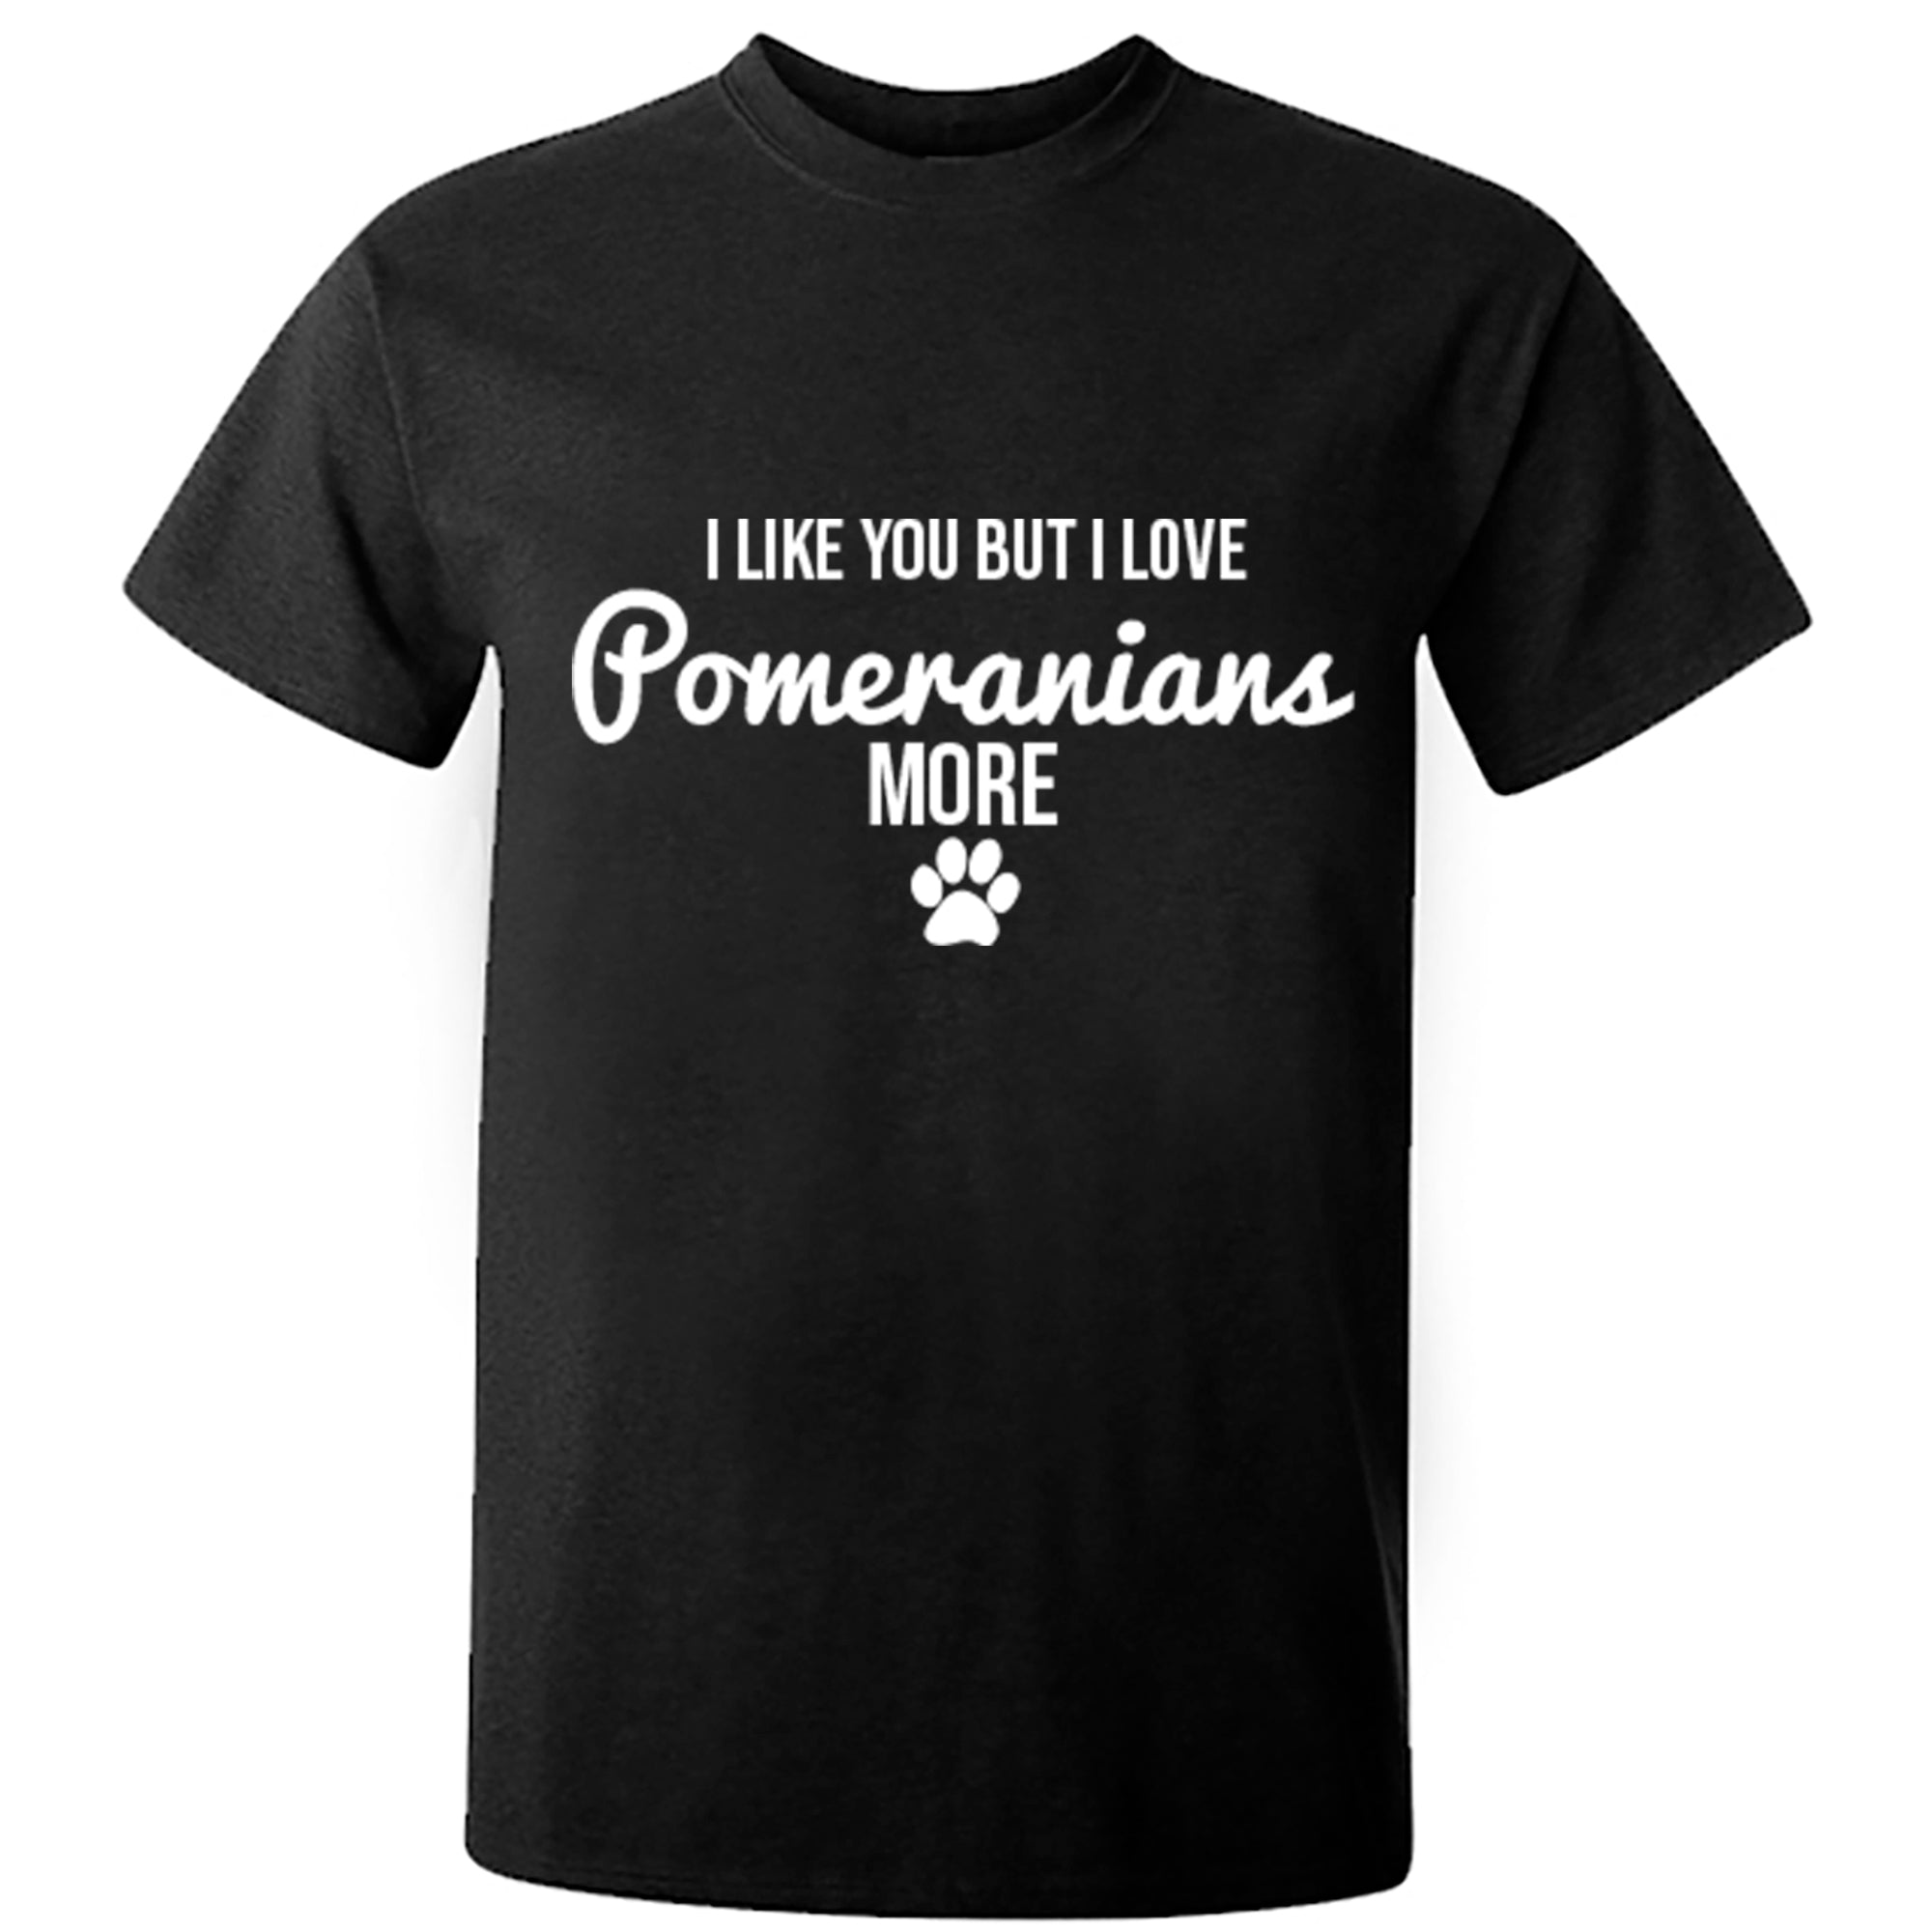 I Like You But I Love Pomeranians More Unisex Fit T-Shirt S0109 - Illustrated Identity Ltd.